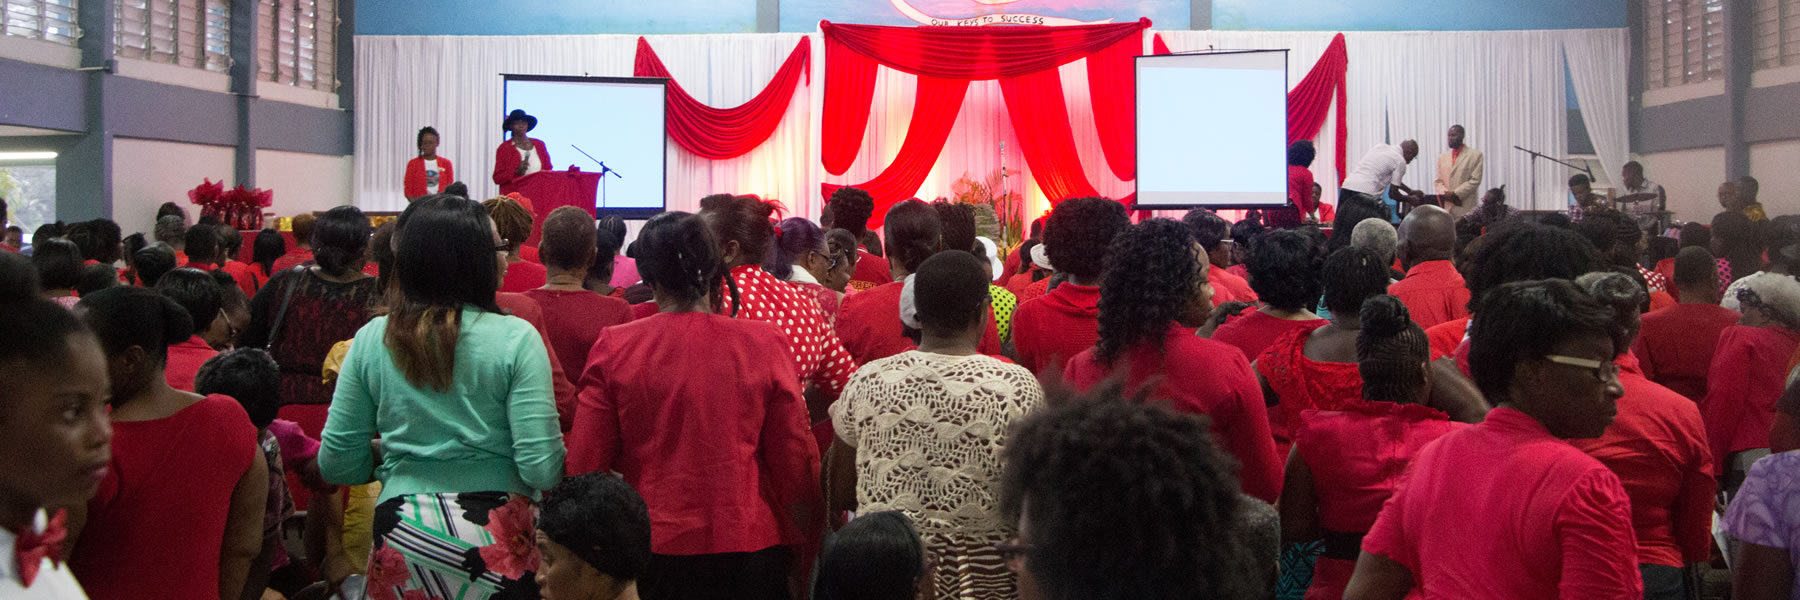 <strong>Women Ministries Convention</strong>  	            <br/>Programme provided for over 200 women by the Tobago Mission.